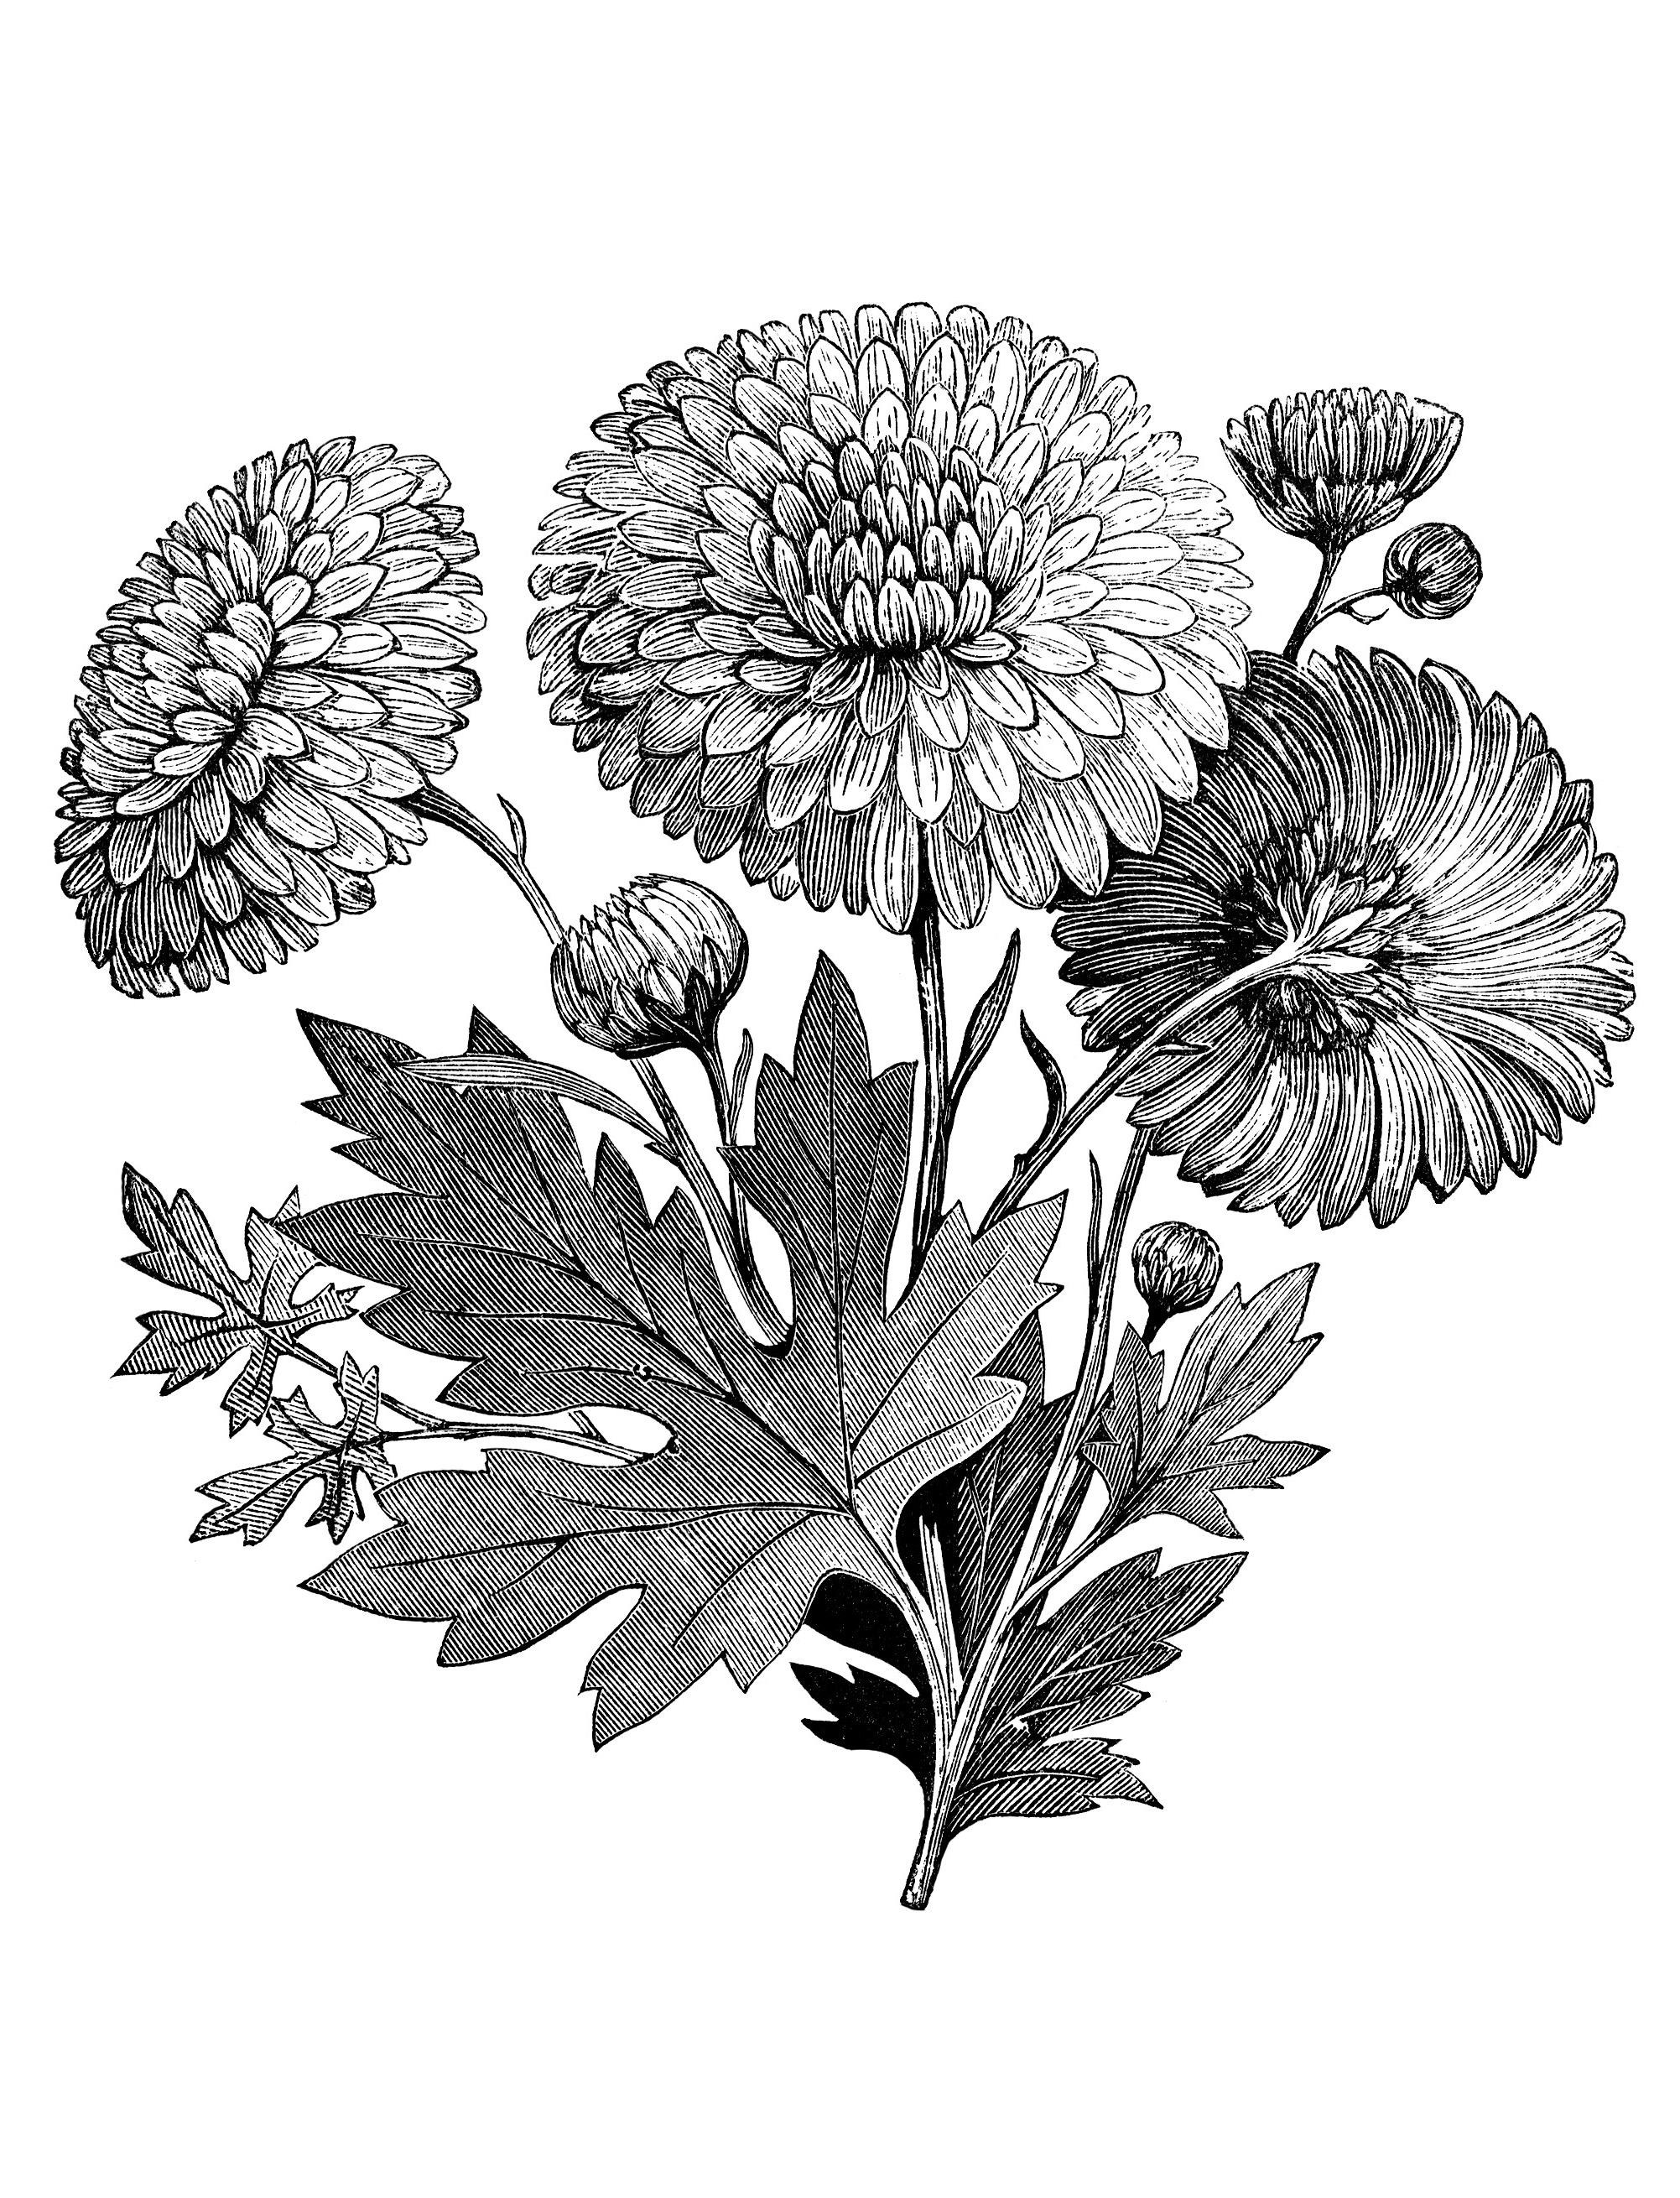 coloring flower clipart black and white flowers color clipart black and white 8 petal flower white and flower clipart black coloring